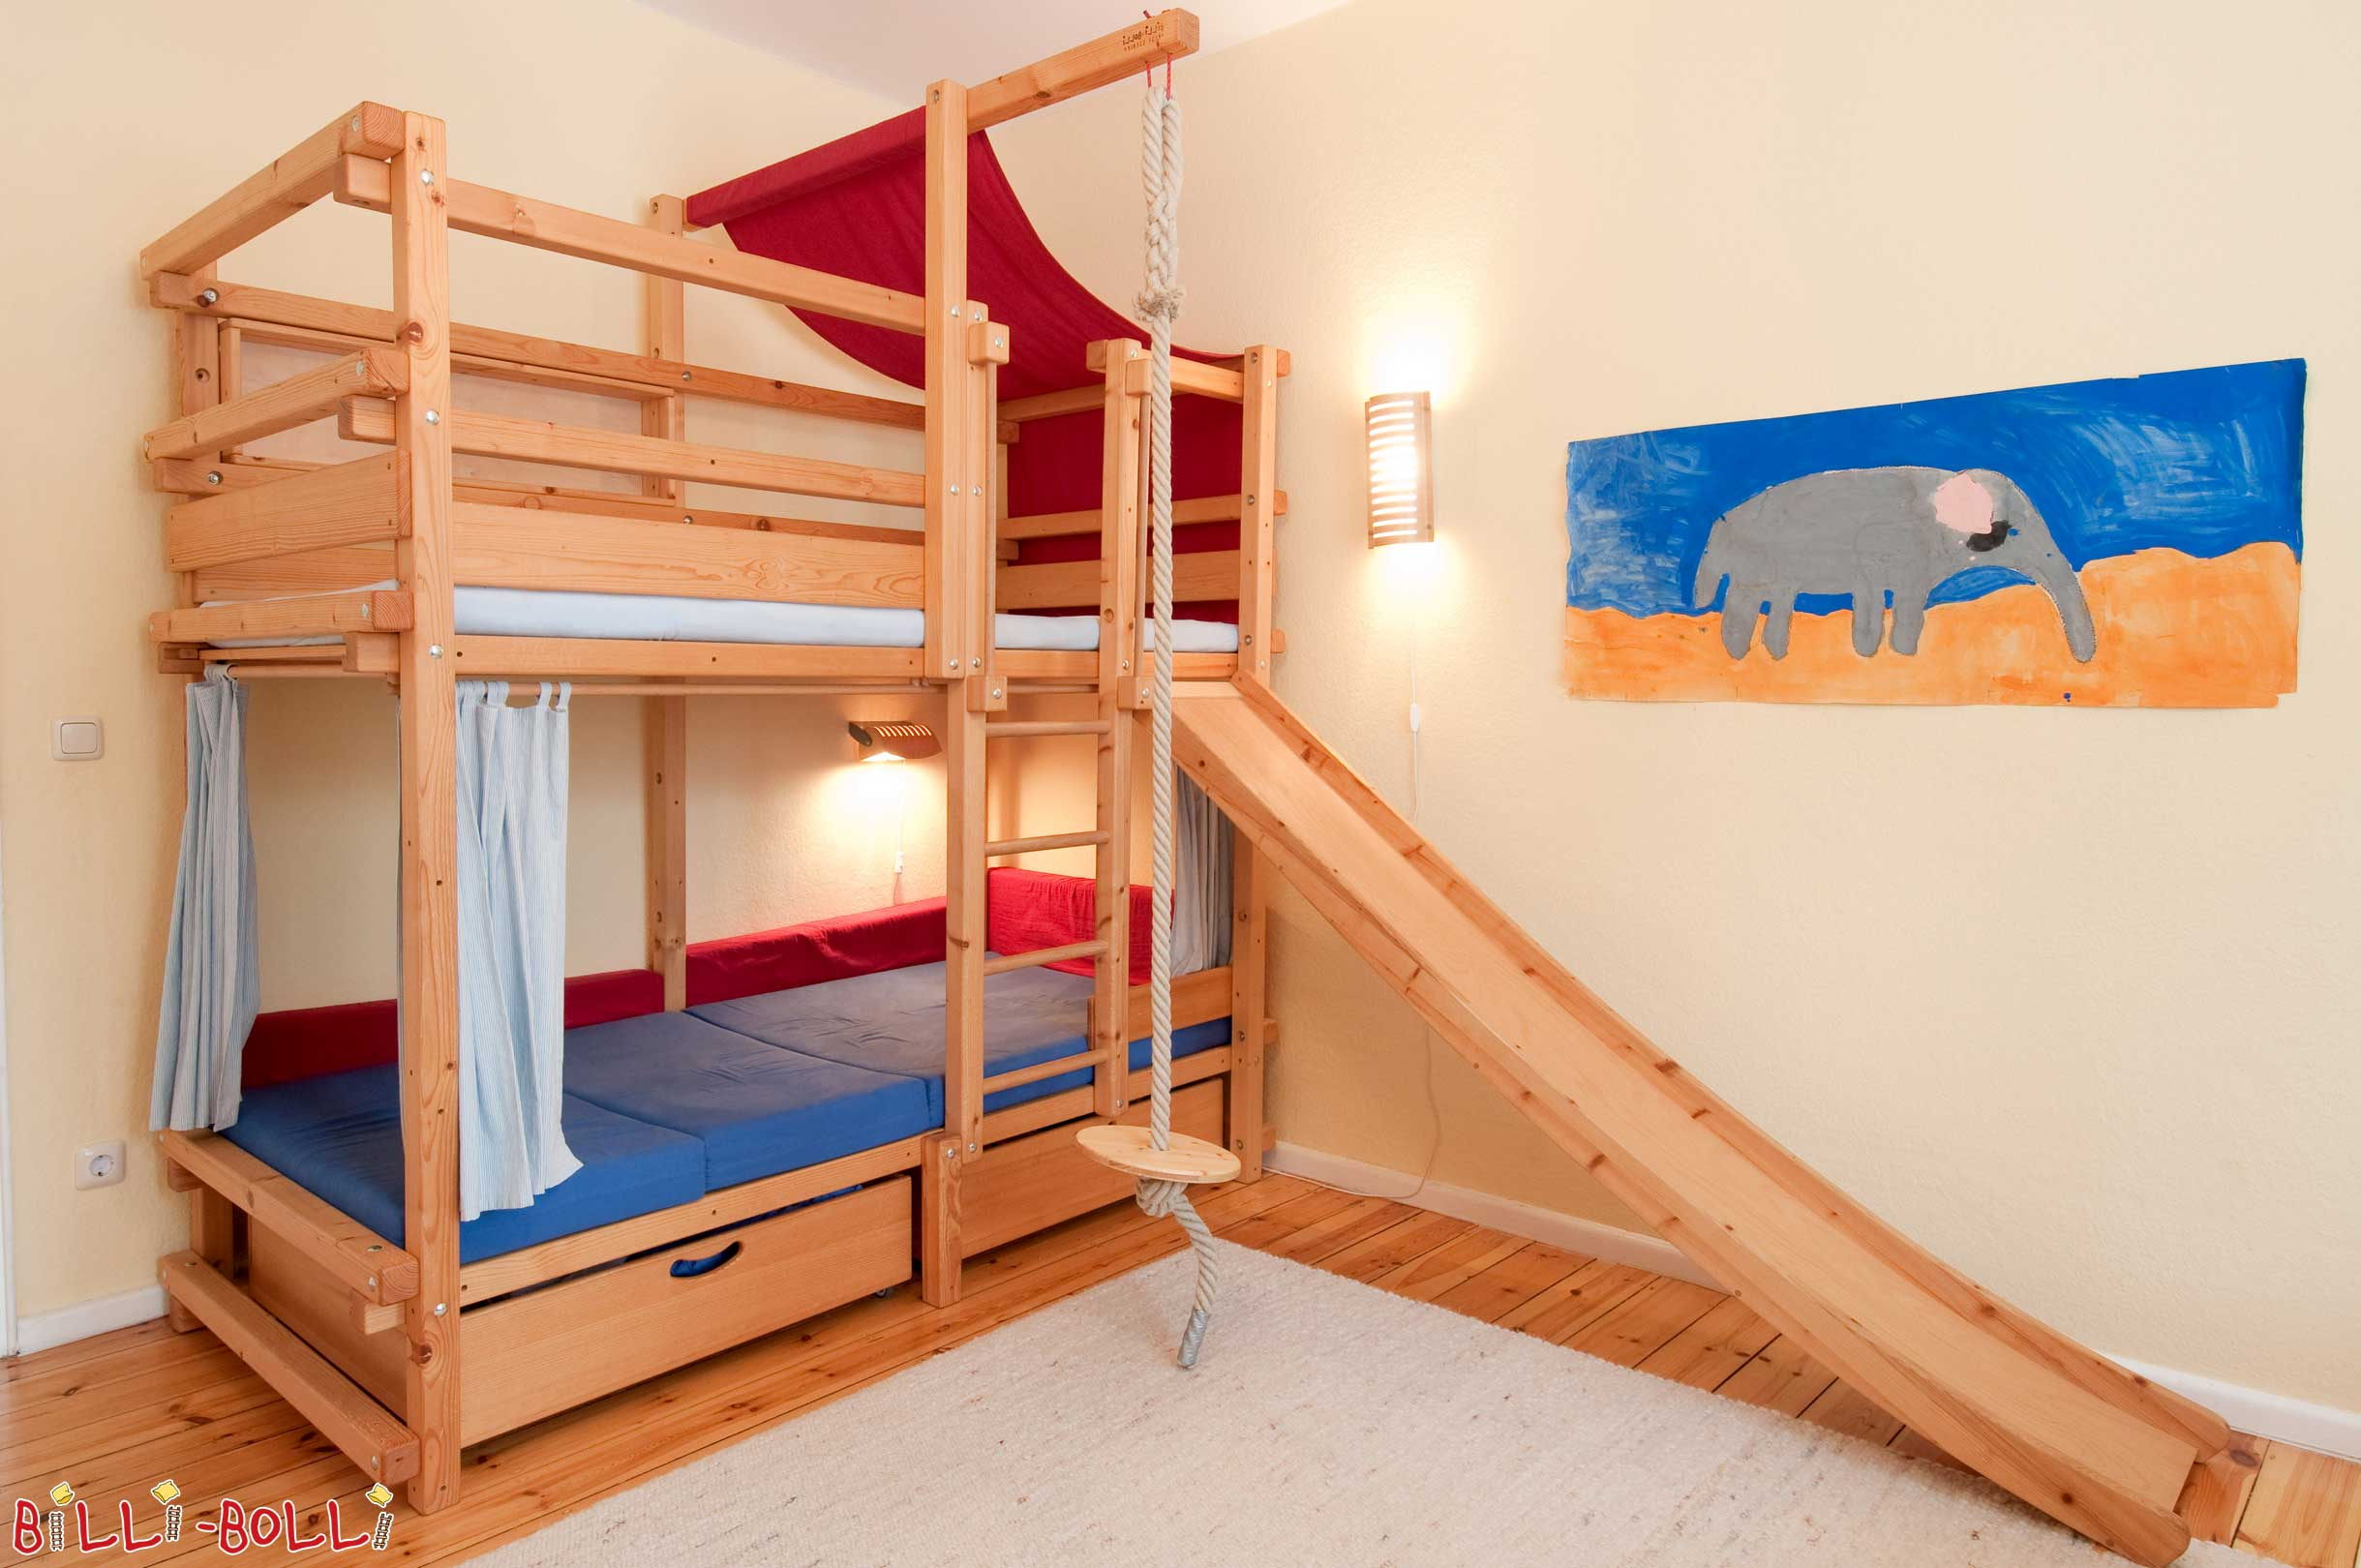 Etagenbett Flexa Bunk Bed | Buy Online | Billi-bolli Kids' Furniture